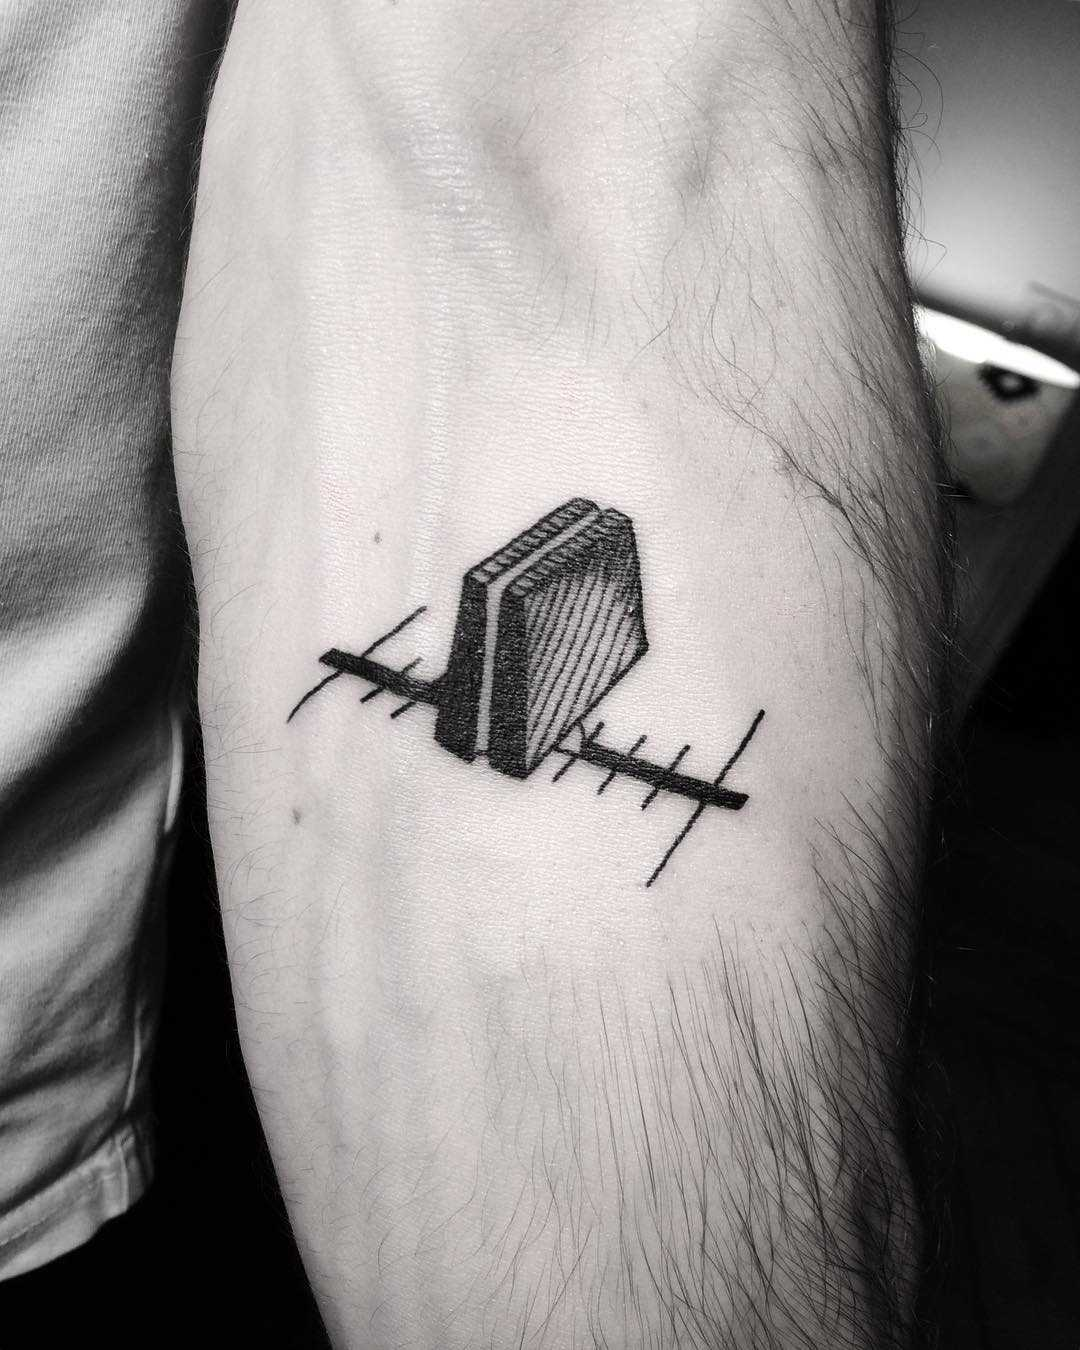 Crossfader tattoo